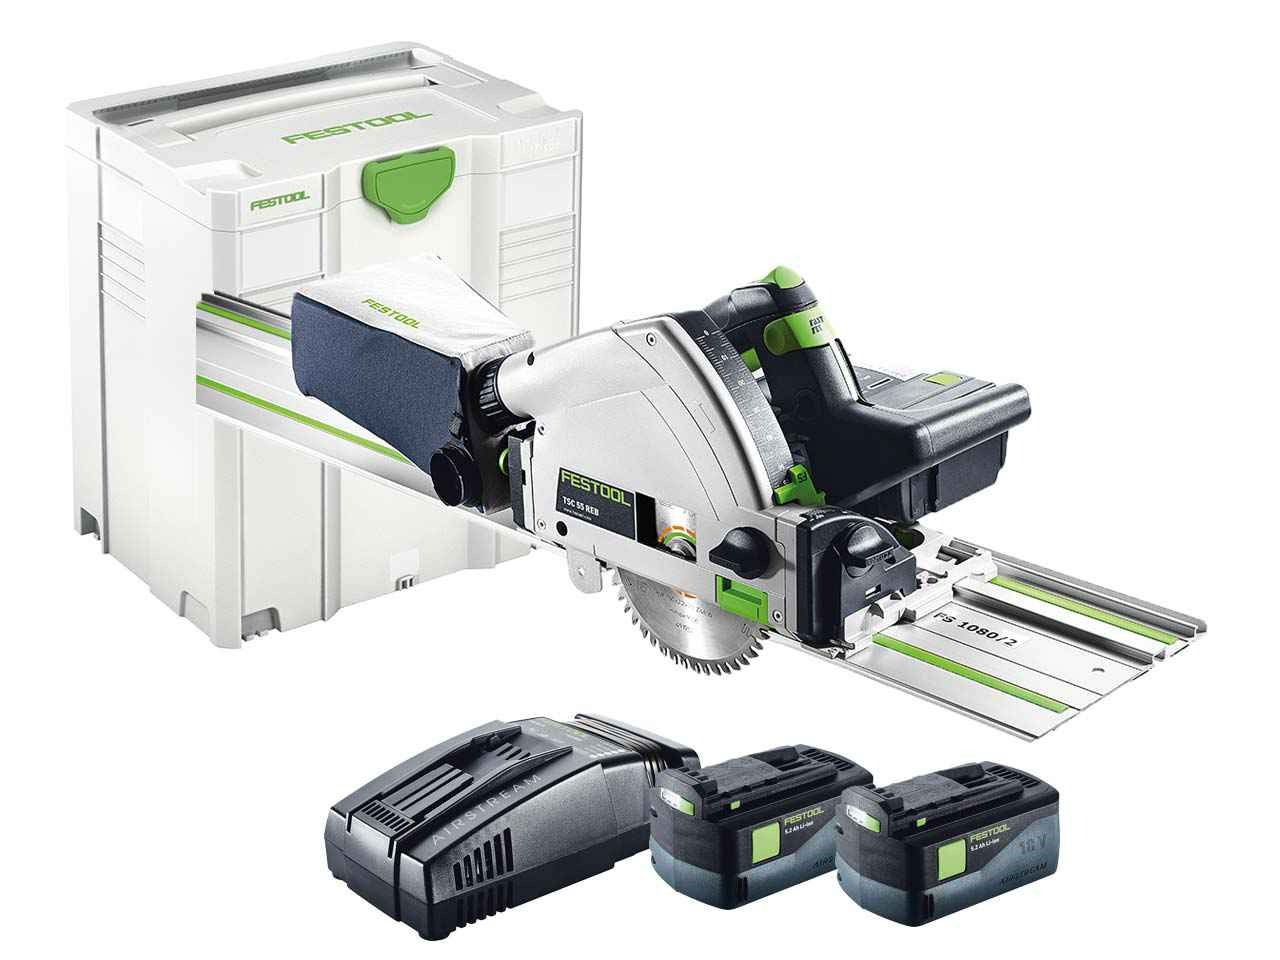 festool tsc 55 li 5 2 reb set fs gb 18v li ion cordless plunge saw rail systainer 5. Black Bedroom Furniture Sets. Home Design Ideas